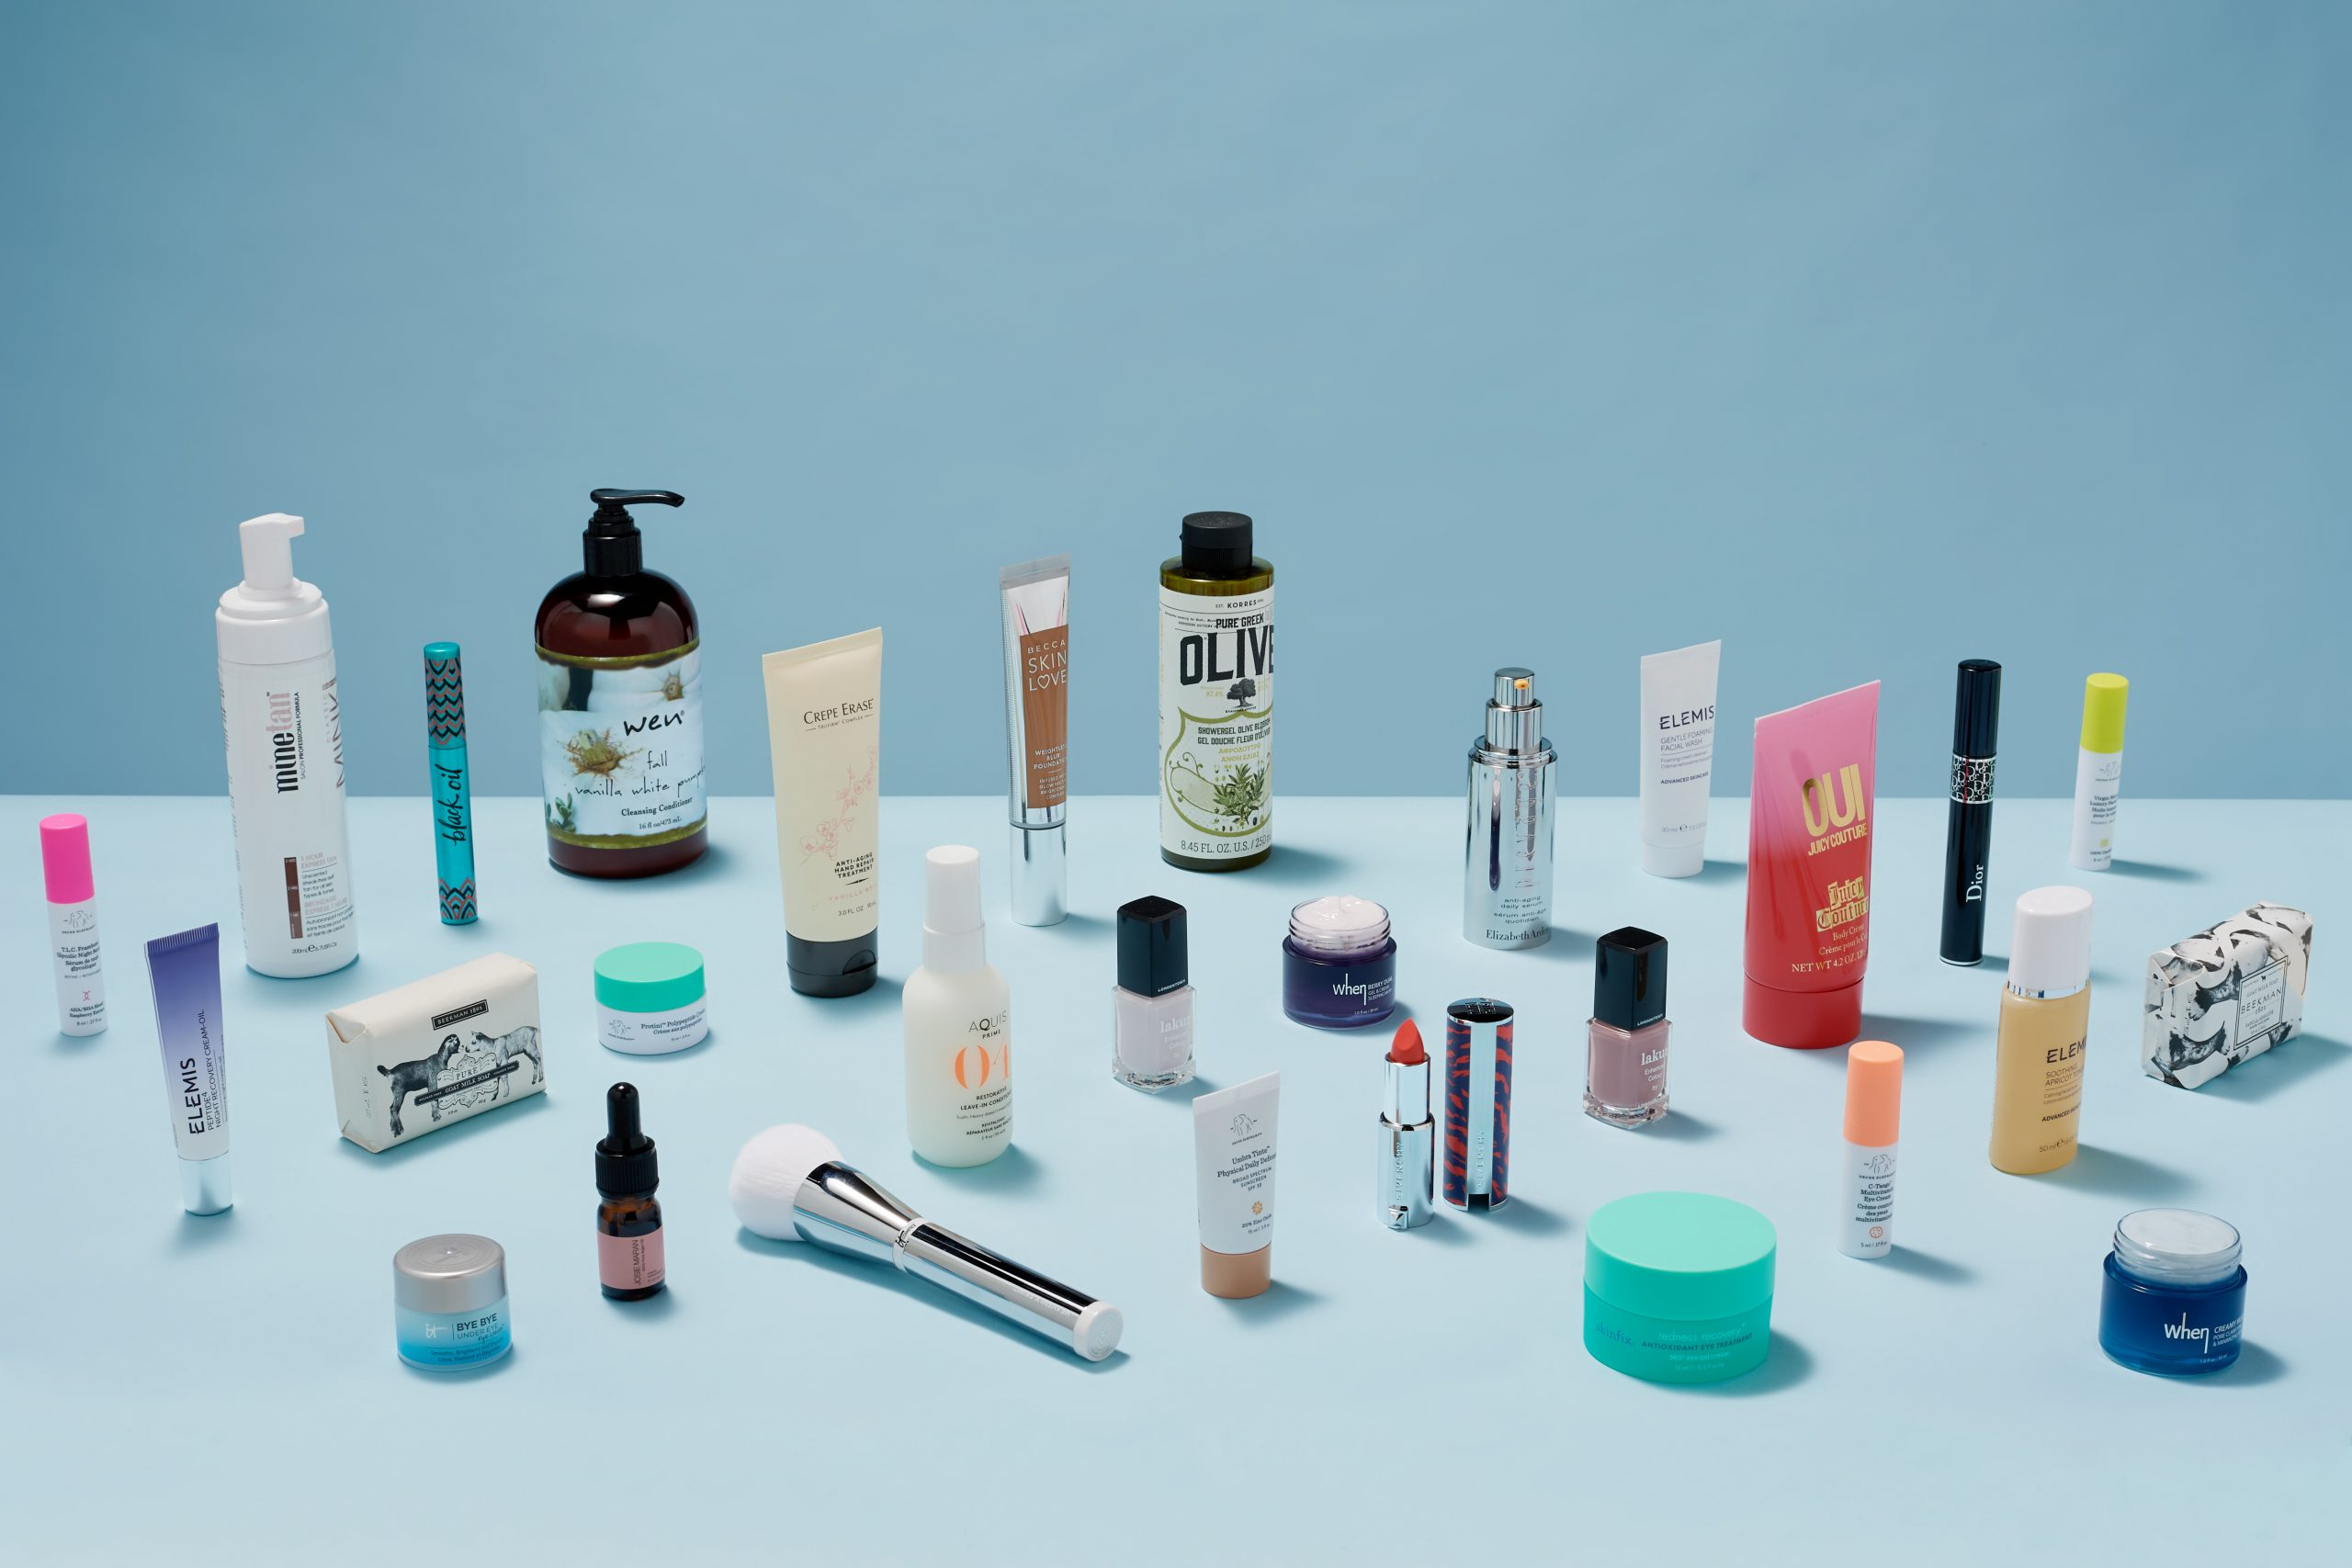 Beauty With Benefits 2020 features over 65 brands.